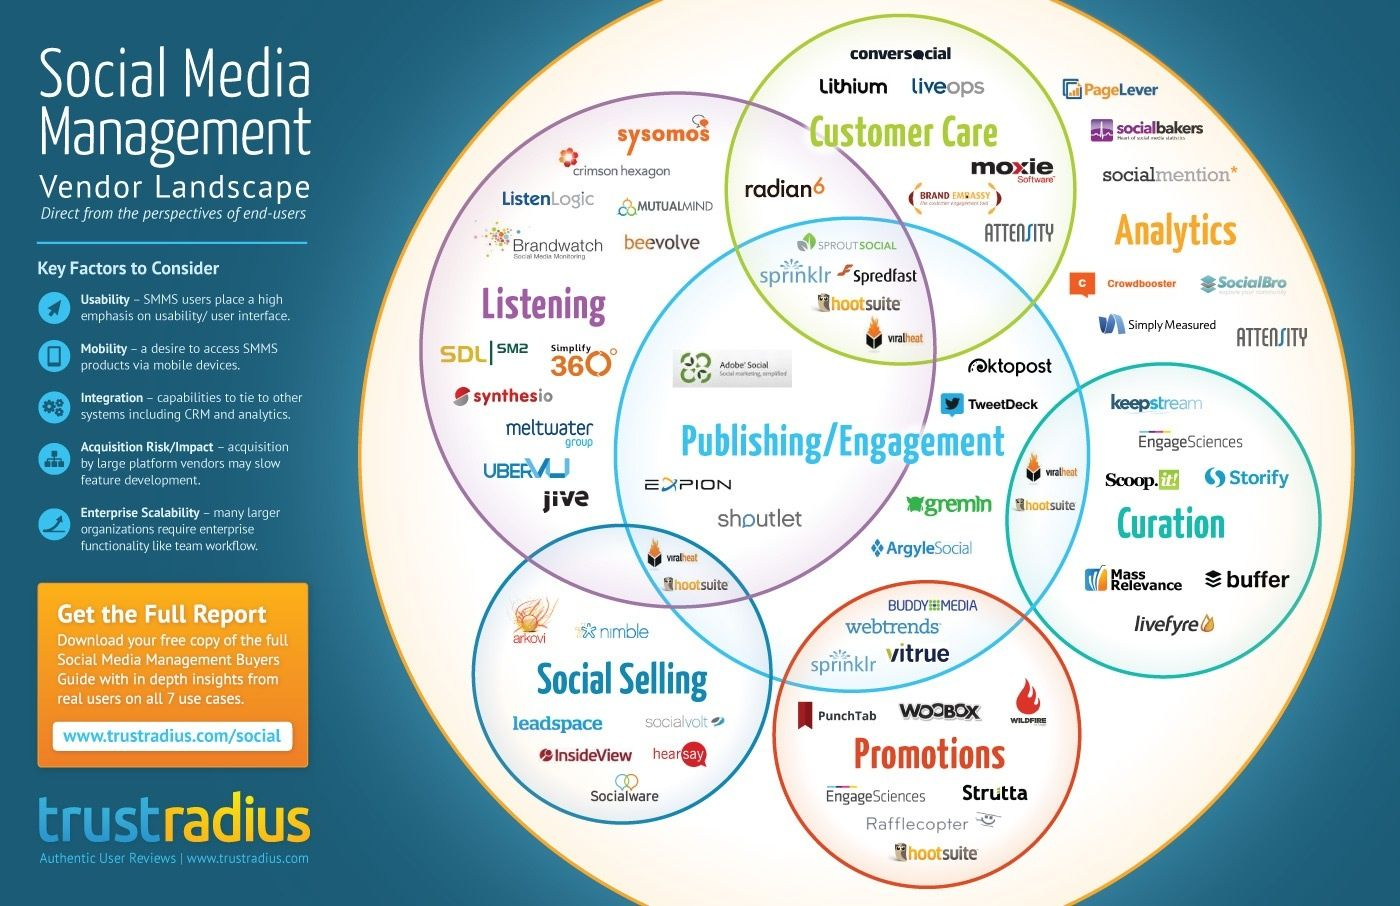 17 What Are The Best Social Media Measurement Tools Quora Social Media Management Tools Social Media Management Software Social Media Measurement